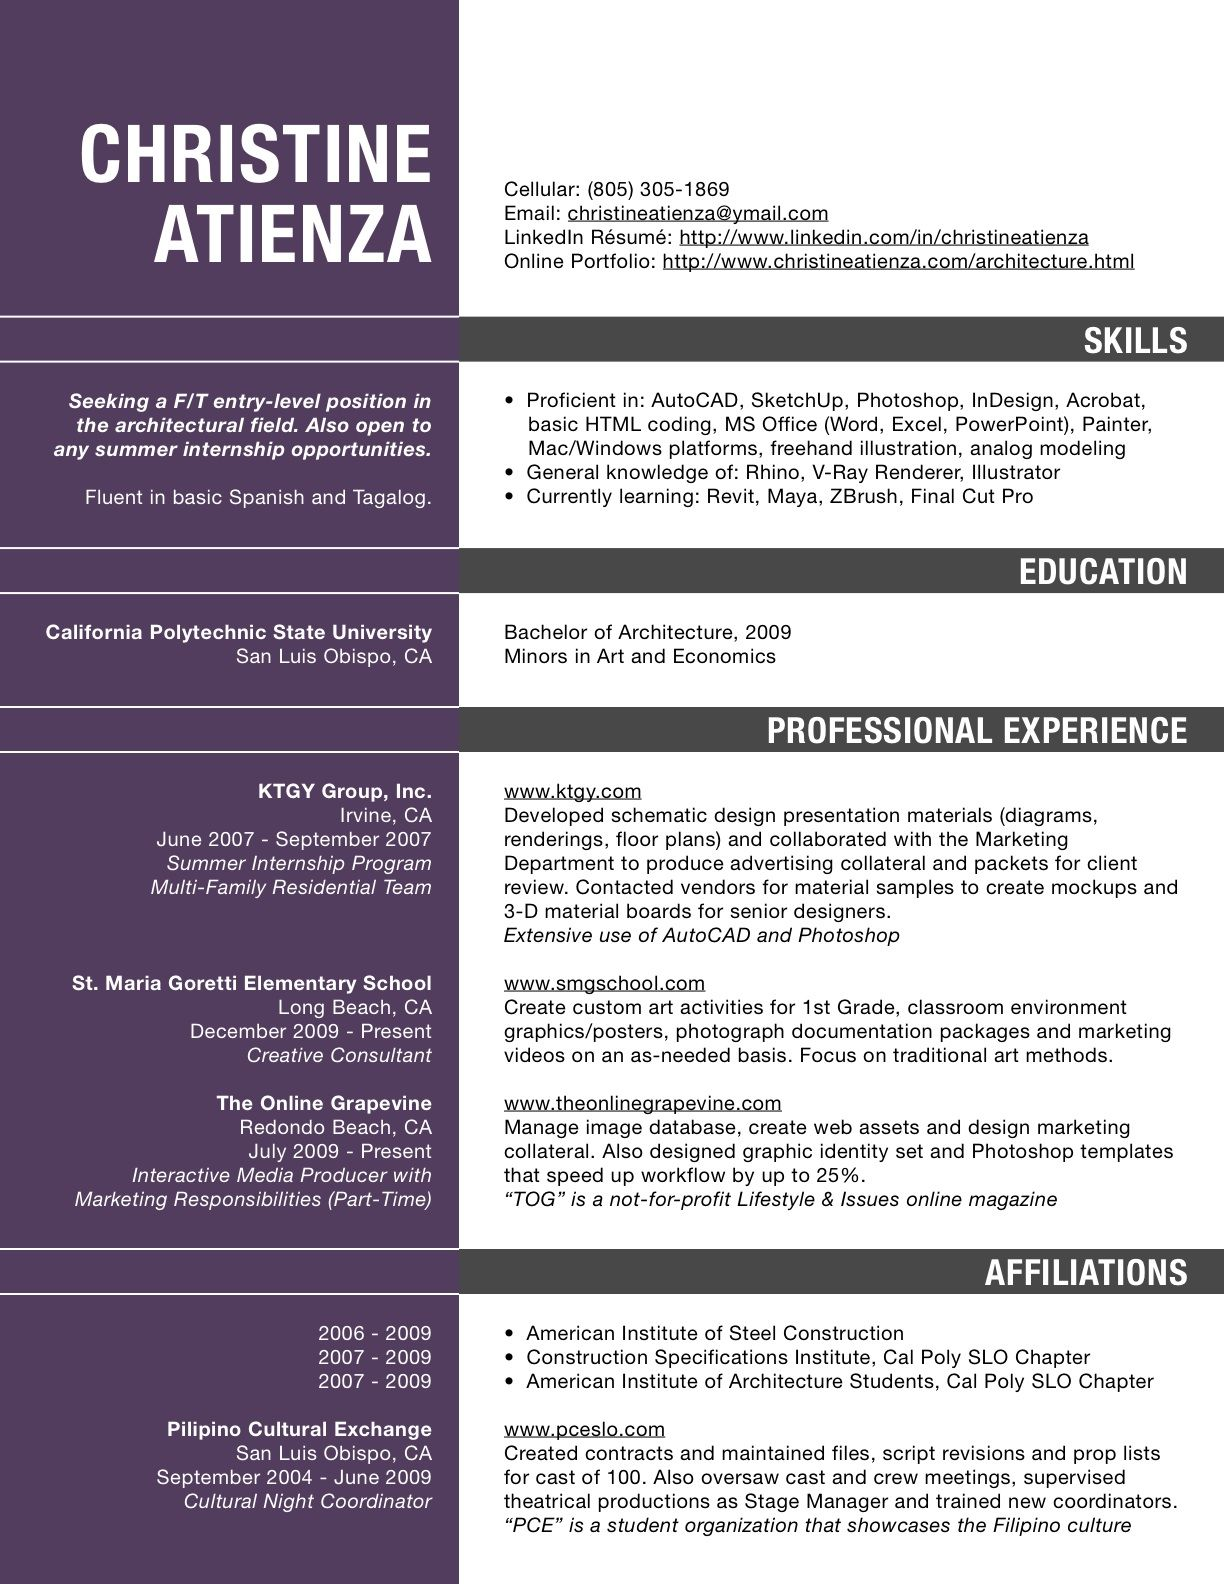 Charming Landscape Architect Resume Templates | Bathroom Design 2017 2018 |  Pinterest | Architect Resume, Architects And Bathroom Designs  Landscape Architect Resume